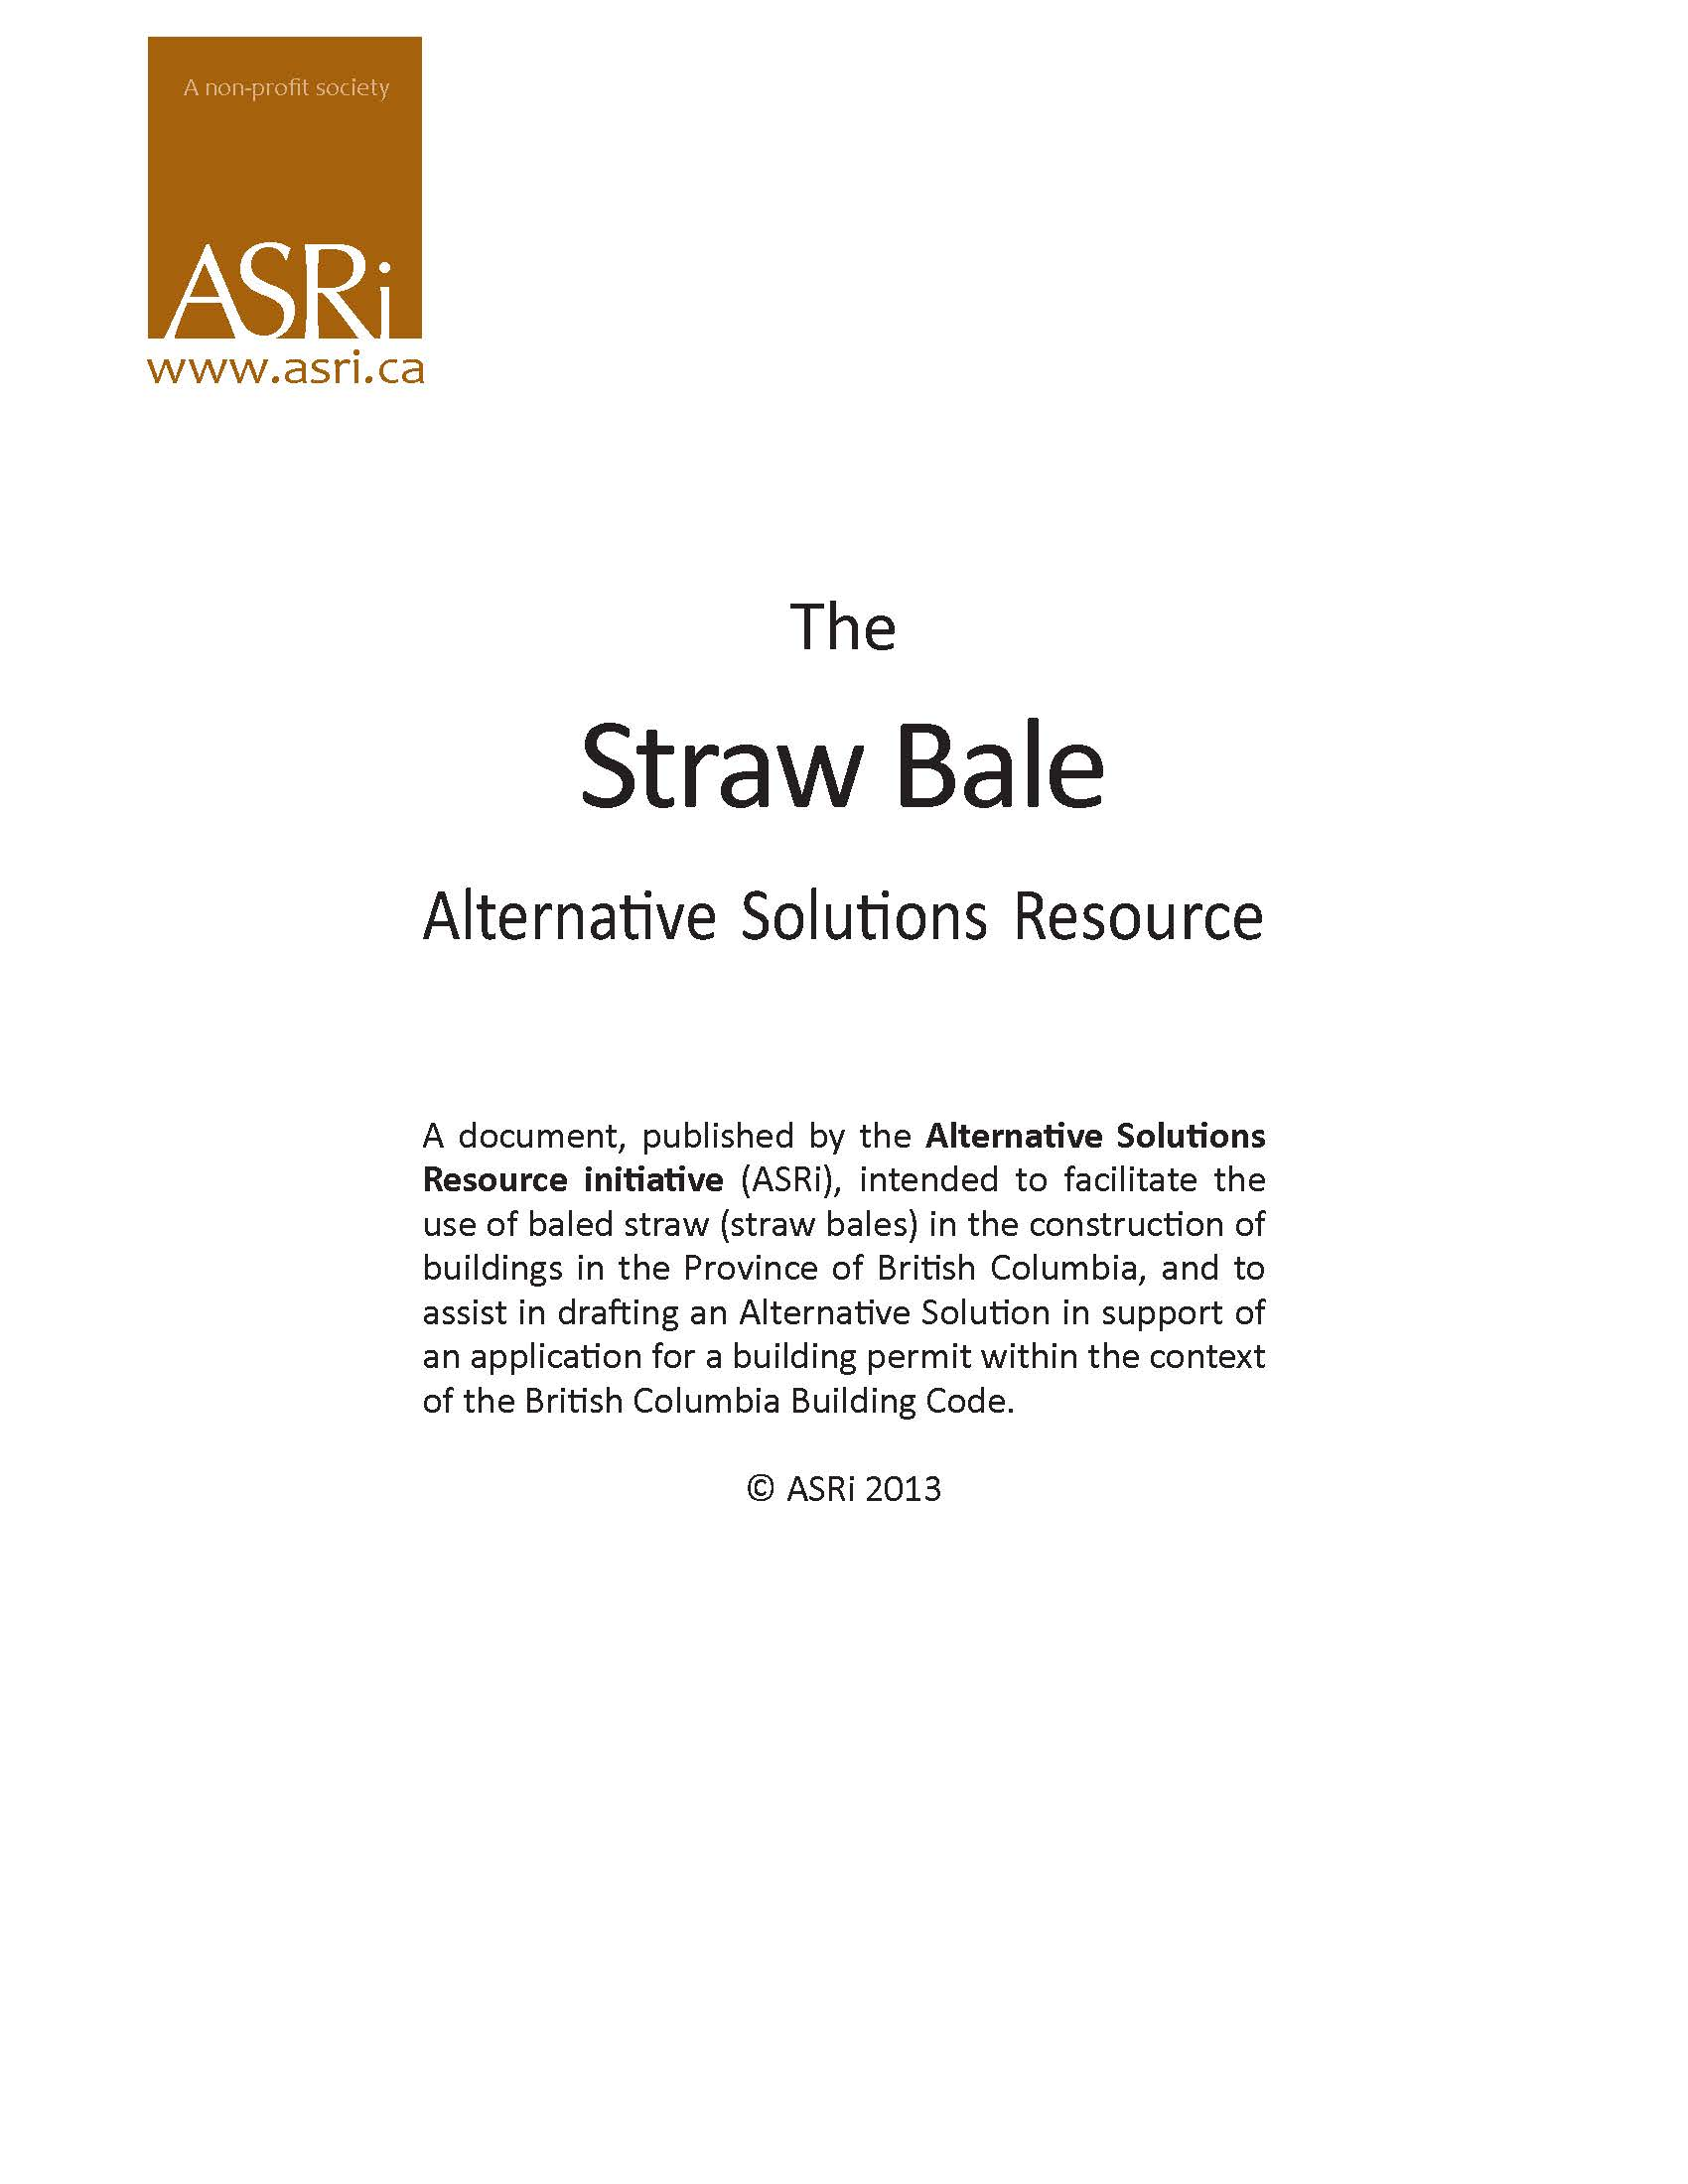 Publication Review: The Straw Bale Alternative Solutions Resource by ASRI